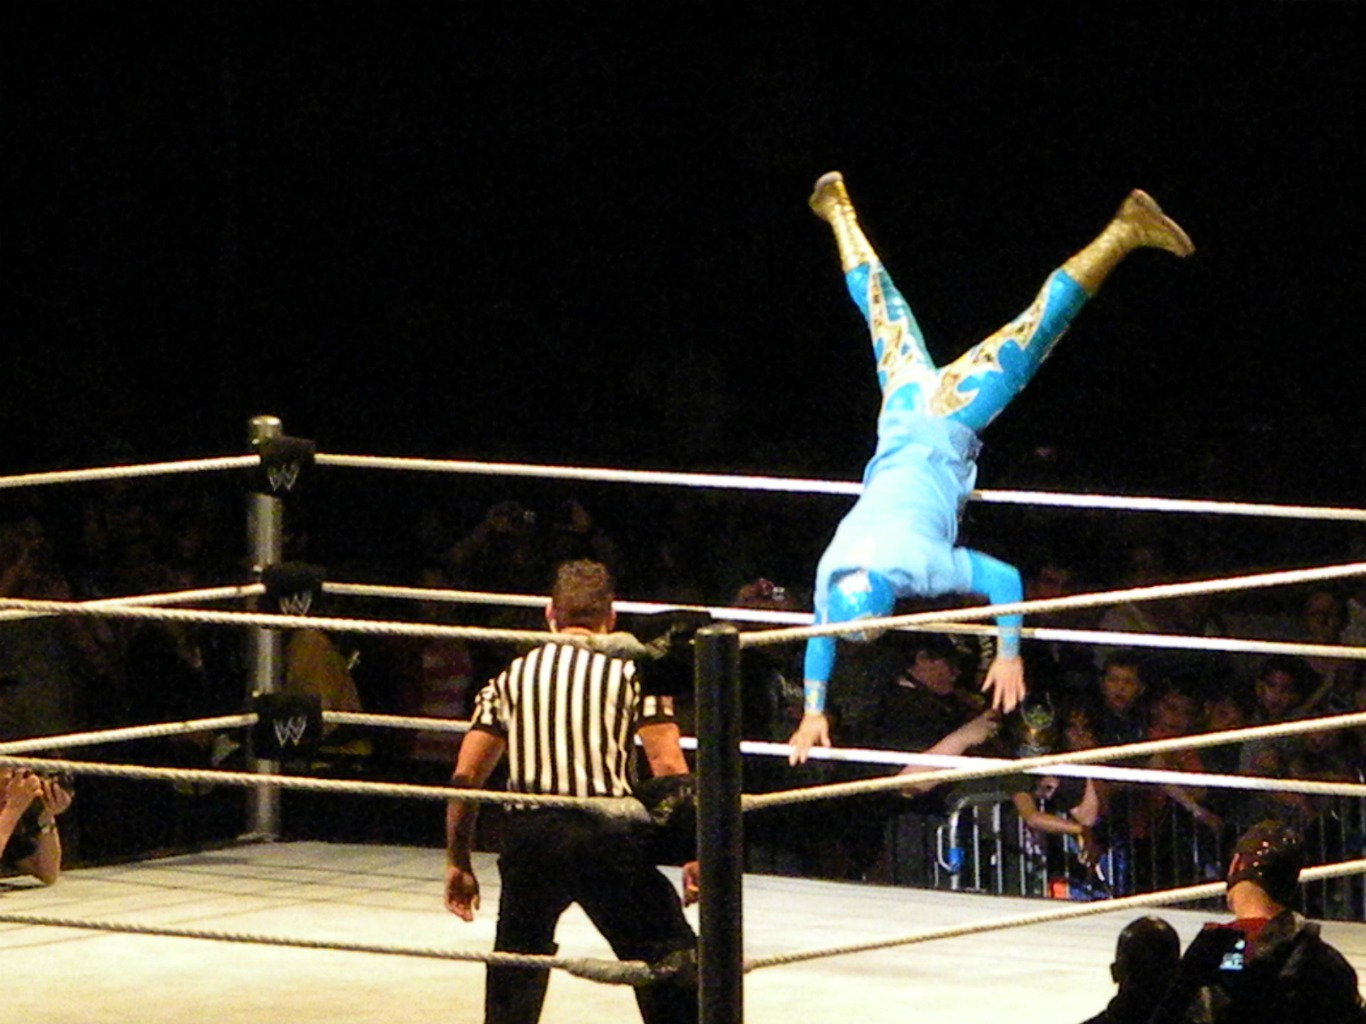 Sin Cara Trampolining Into The Ring.jpg sin cara subiendo al ring de un salto Date 18 June 2011, 21:00:20 Source Flickr: Sin Cara Trampolining Into The